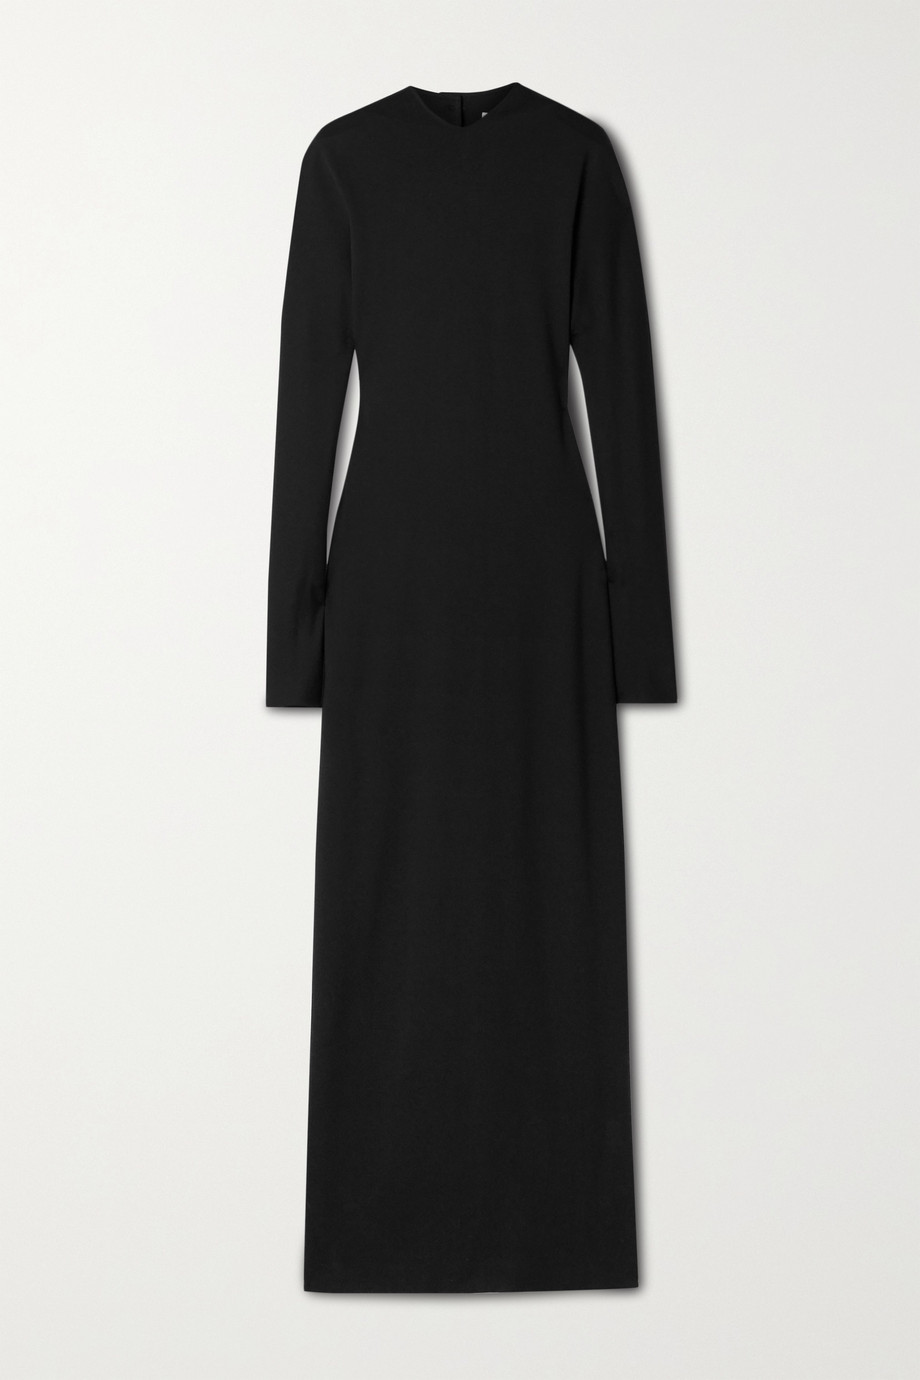 THE ROW Crispiano stretch-jersey maxi dress